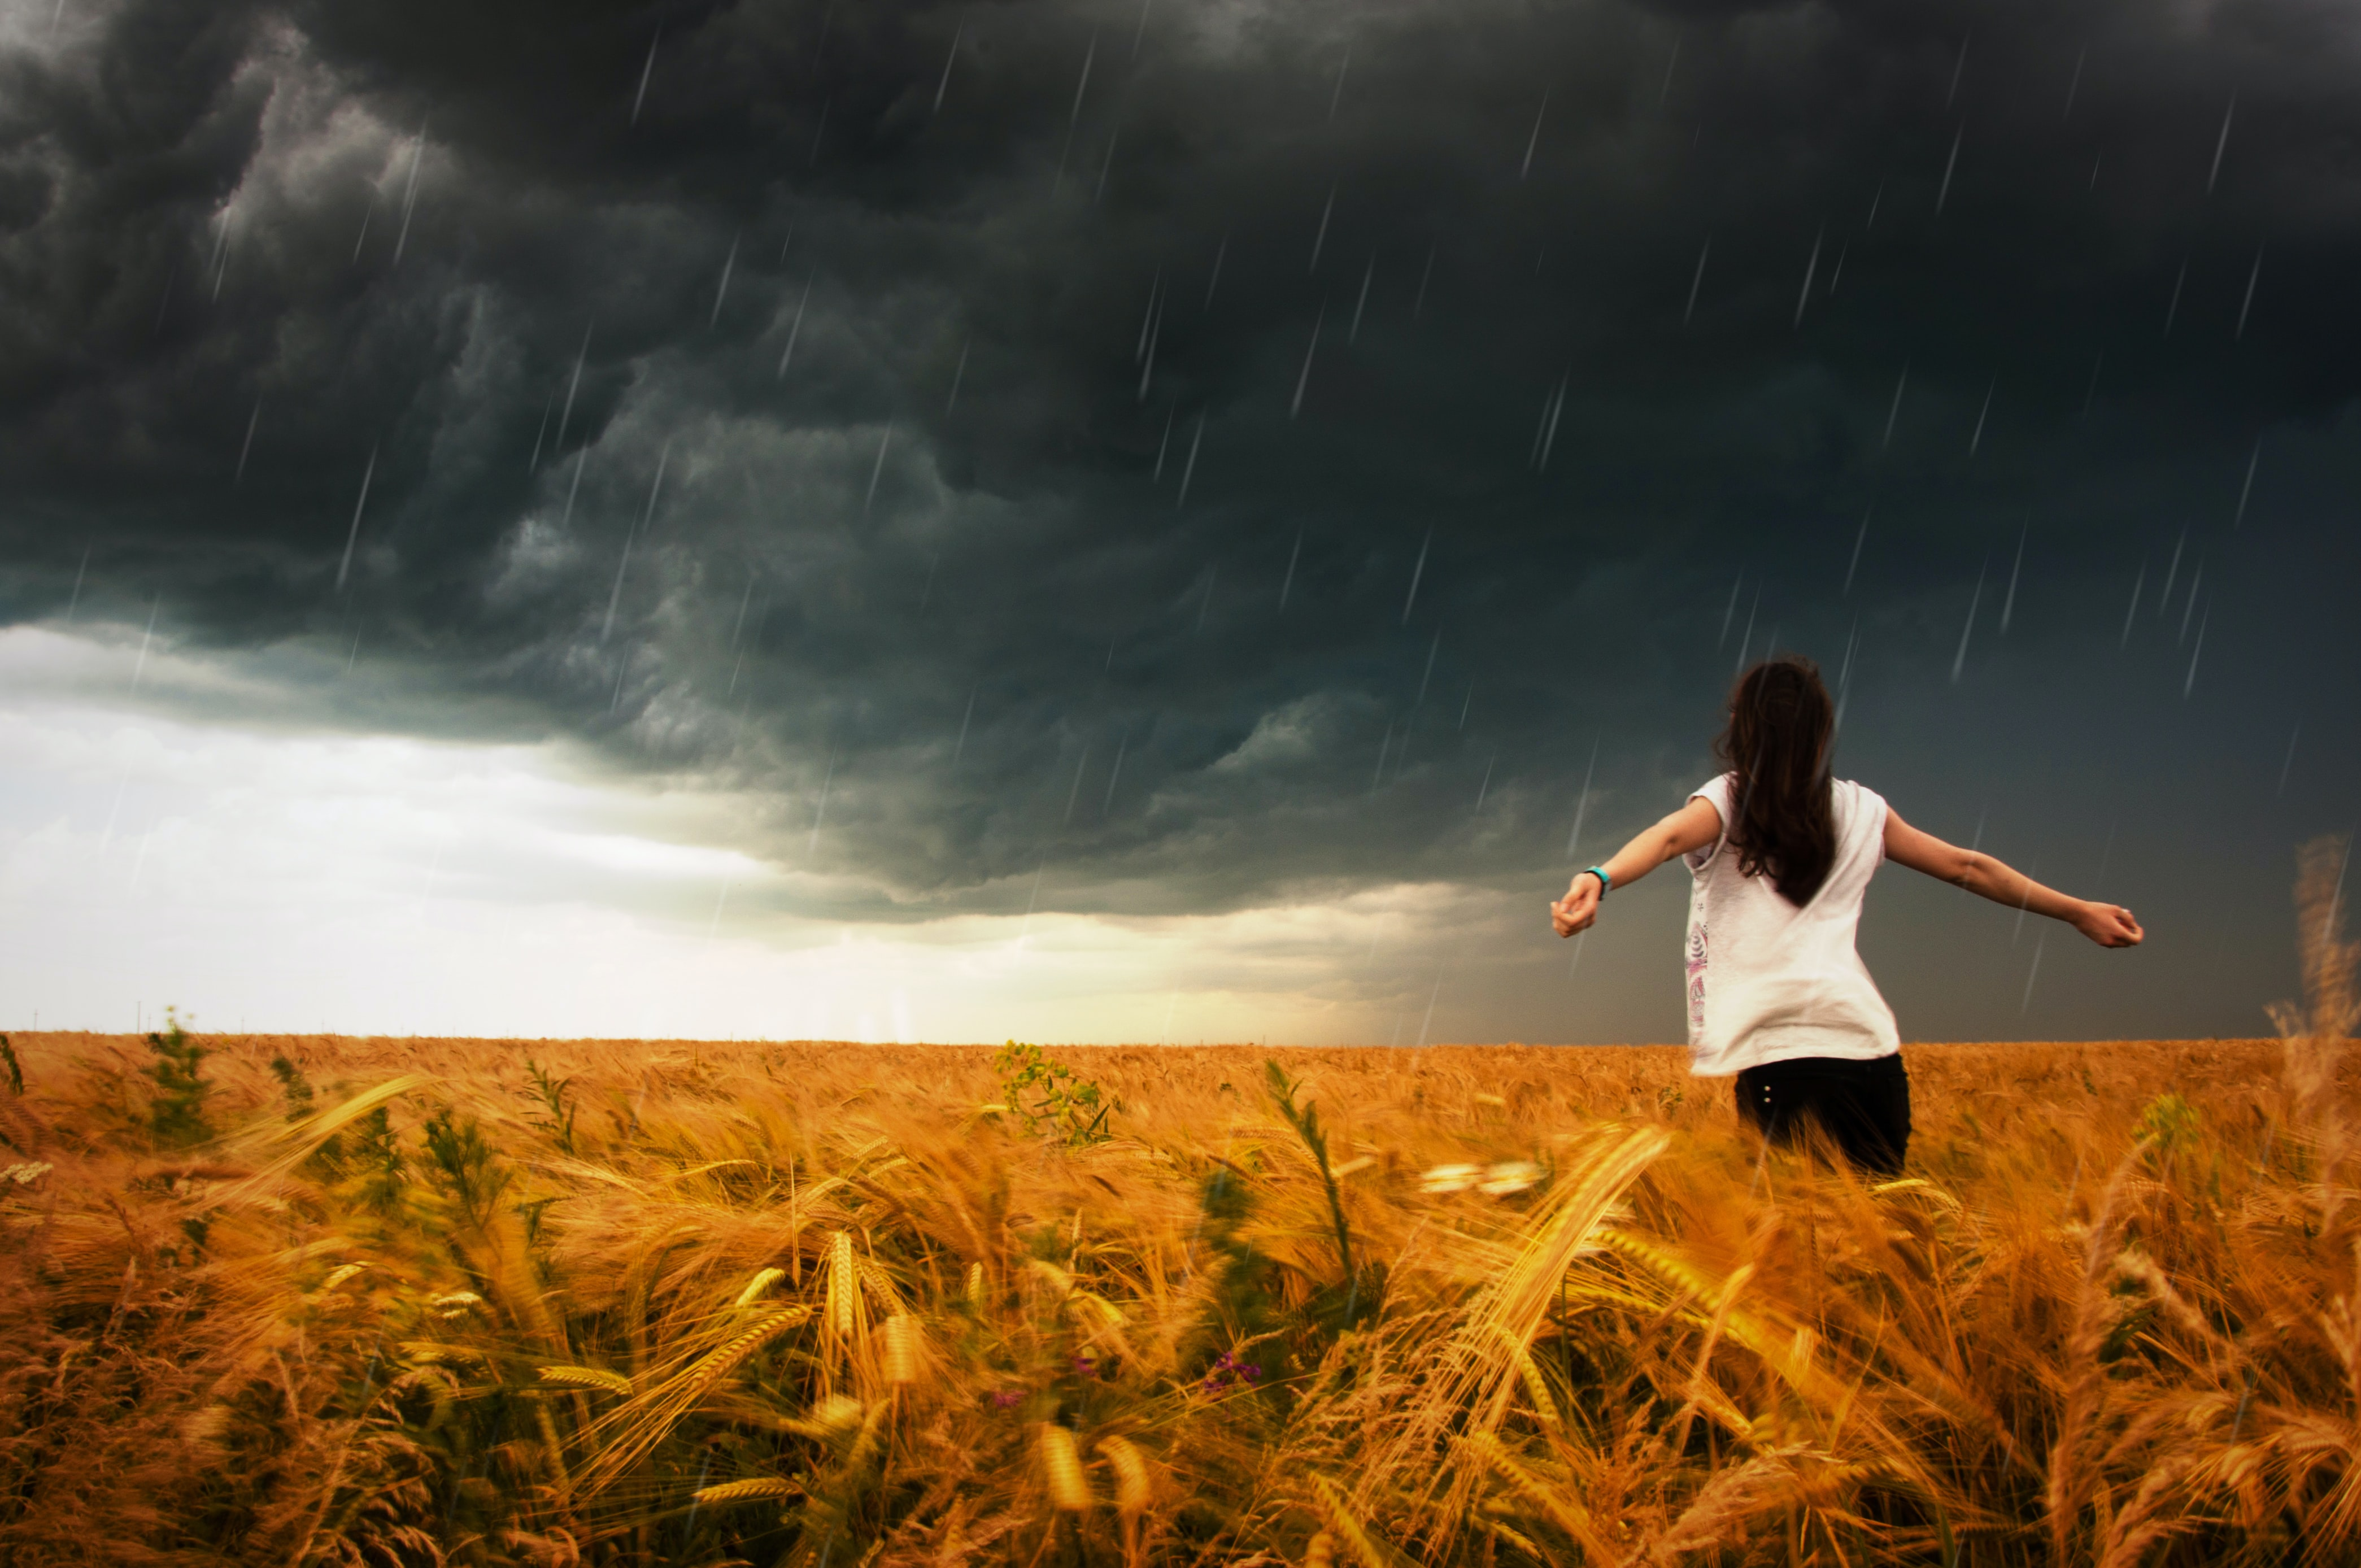 A woman holding her arms out and embracing the incoming storm.